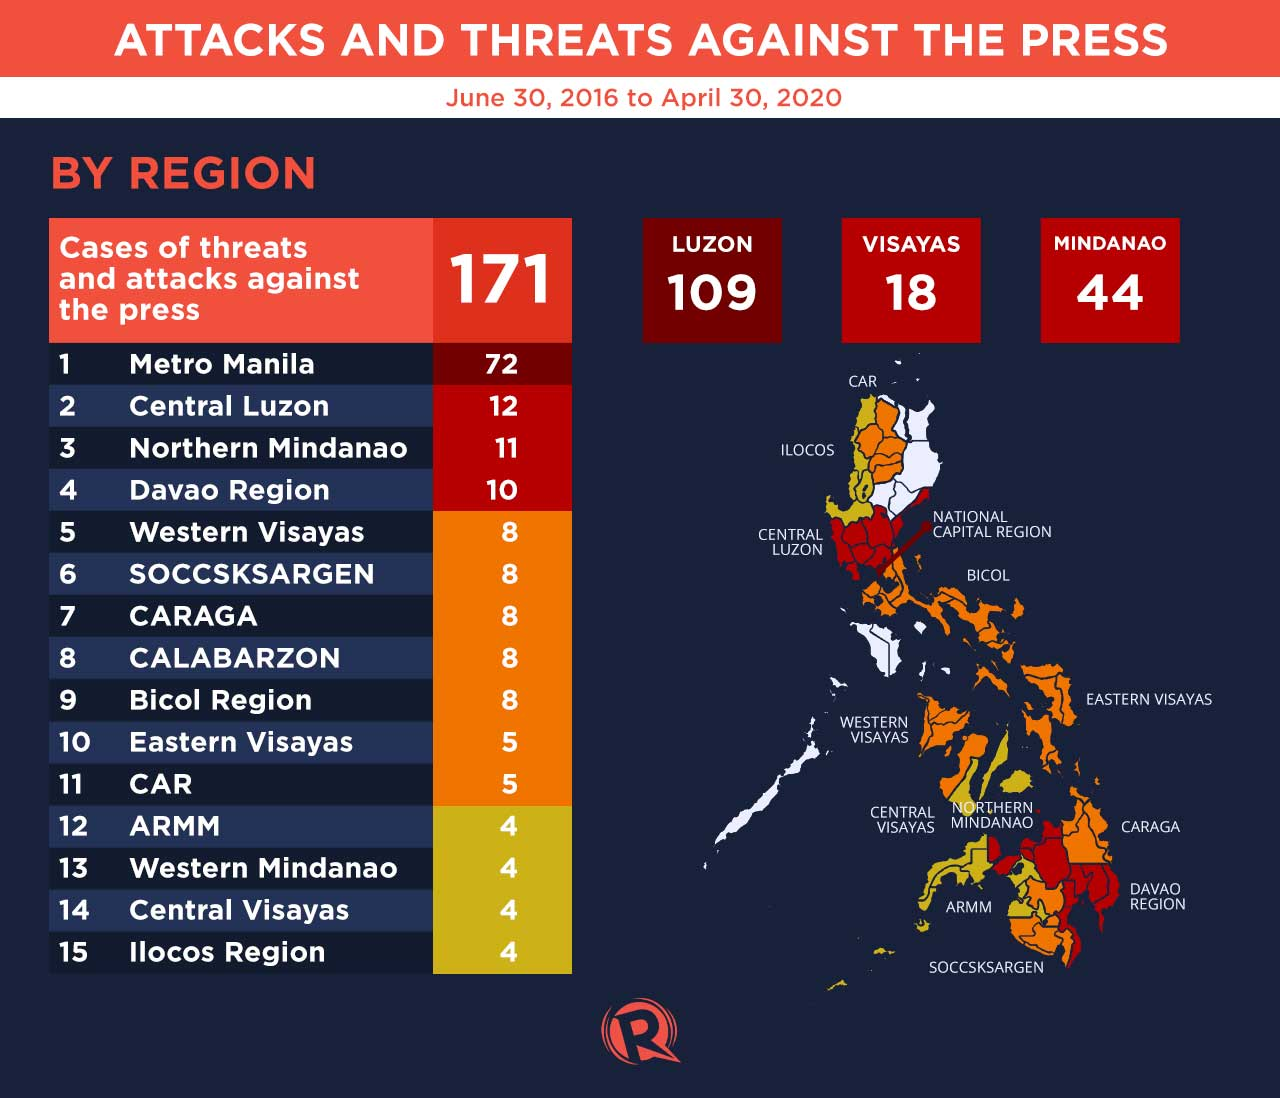 ATTACKS, THREATS AGAINST PRESS. Adapted from infographic made by Center for Media Freedom and Responsibility.